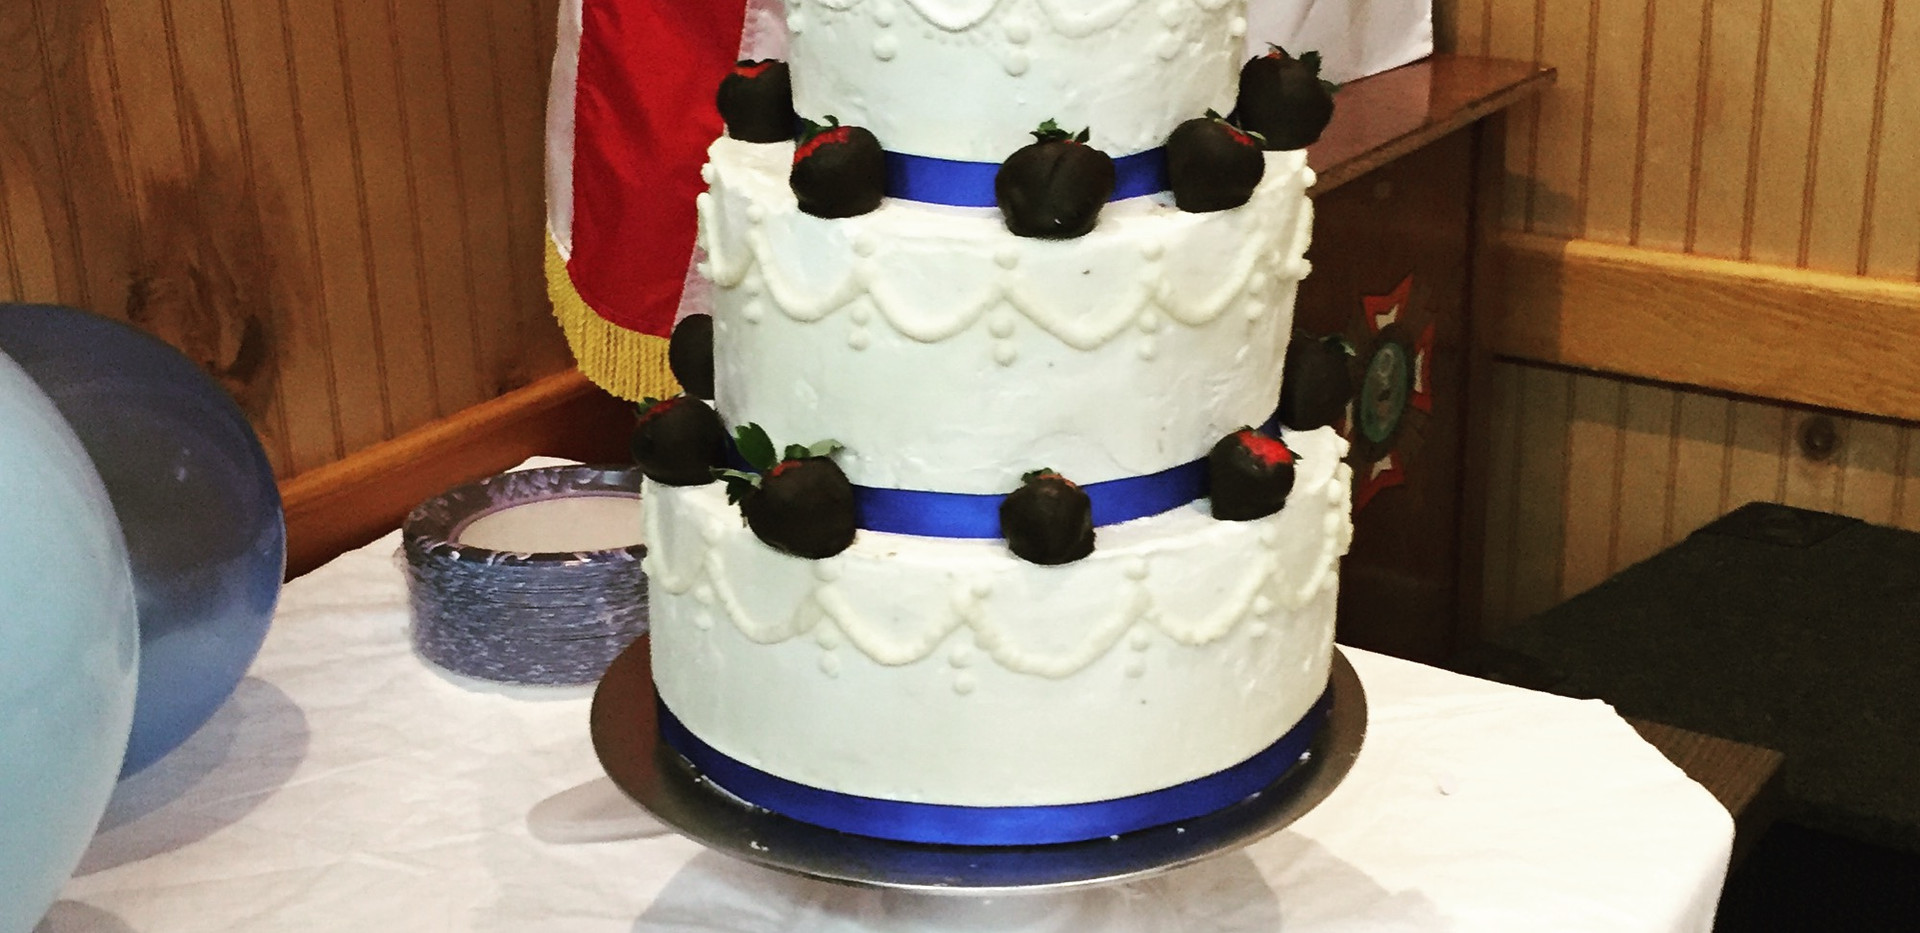 3 tier peanut butter and chocoalte cake with chocolate dipped strawberries.